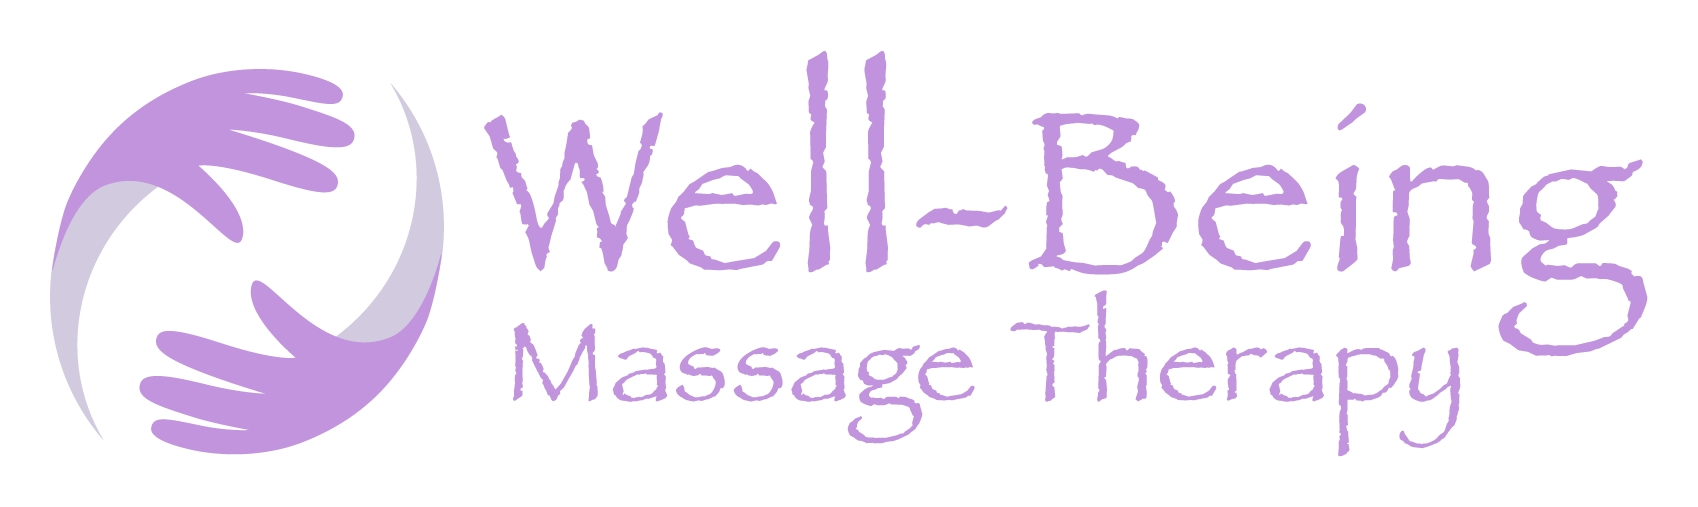 Well-Being Massage Therapy